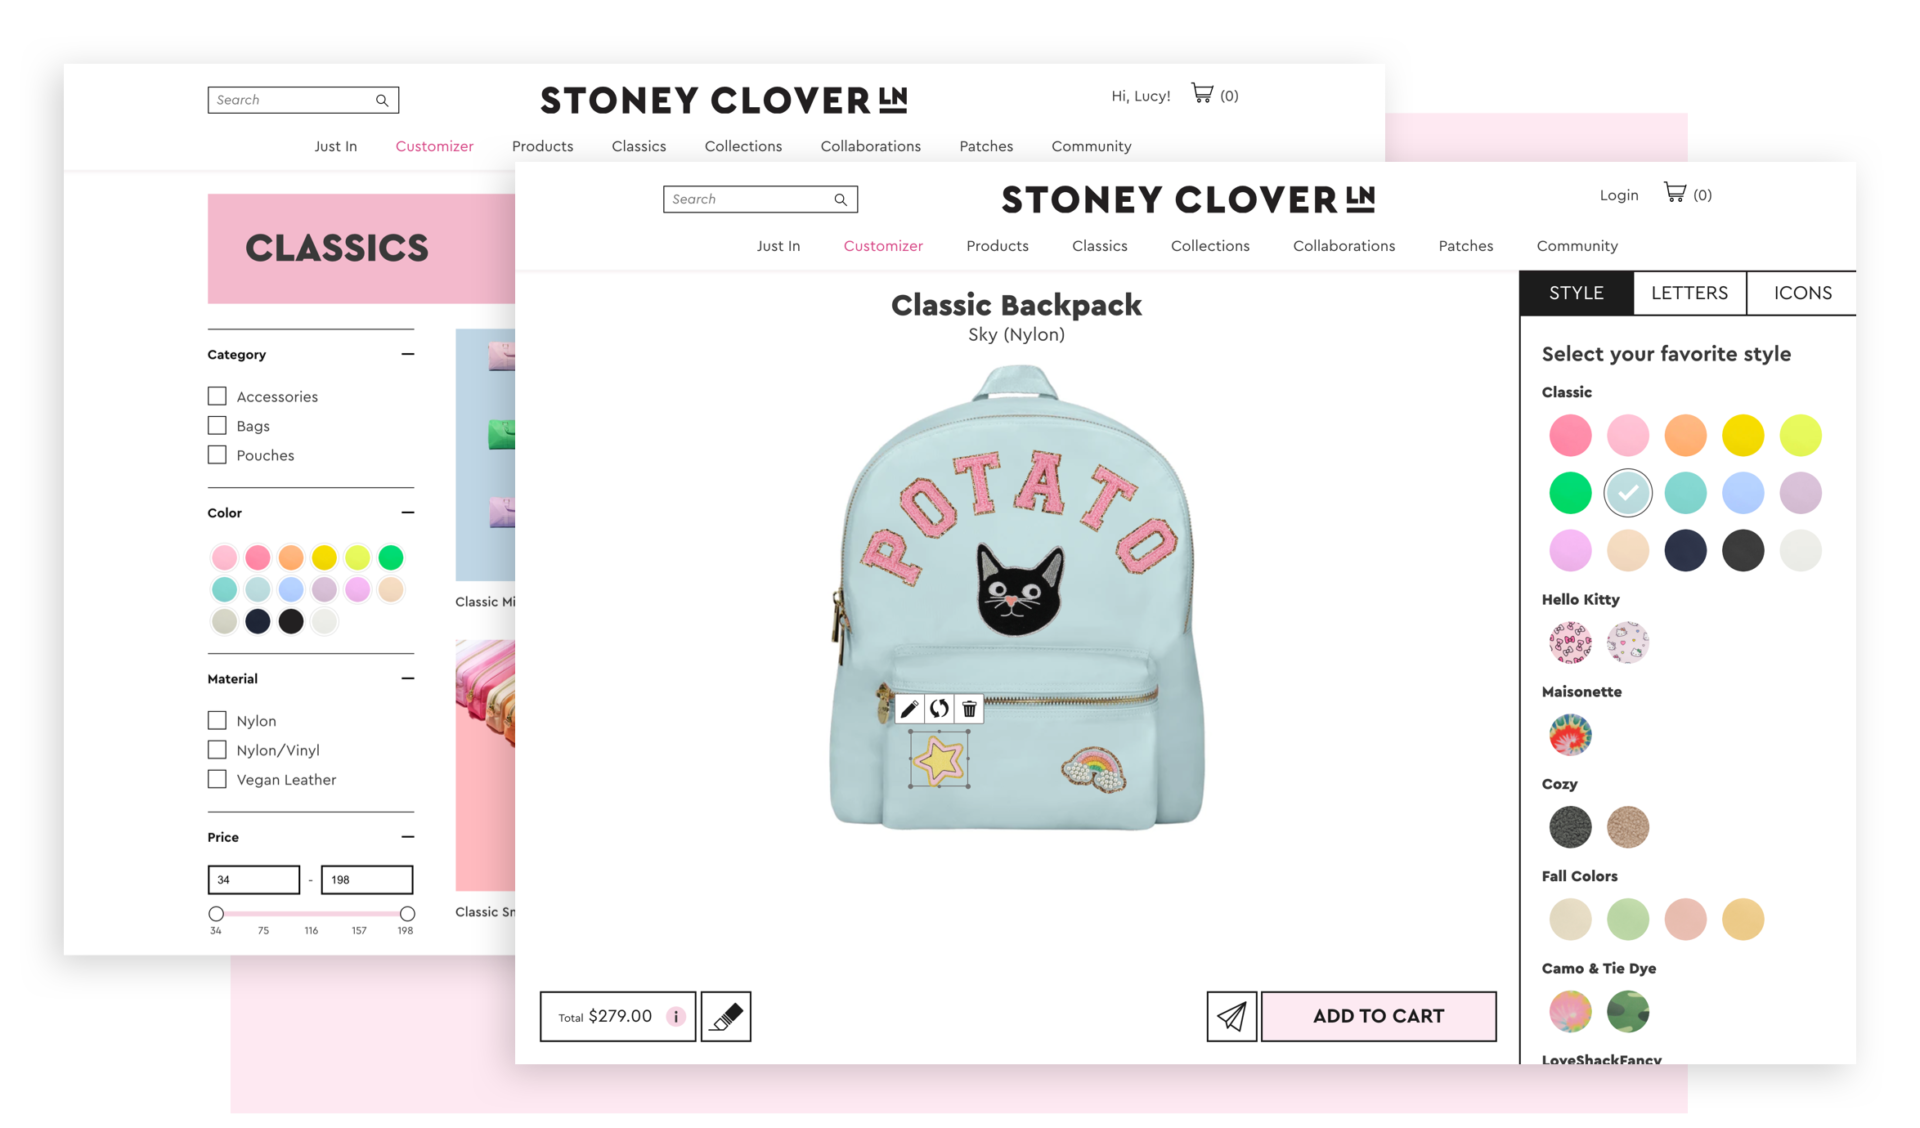 Bringing Stoney Clover Lane's in-store experience to the web